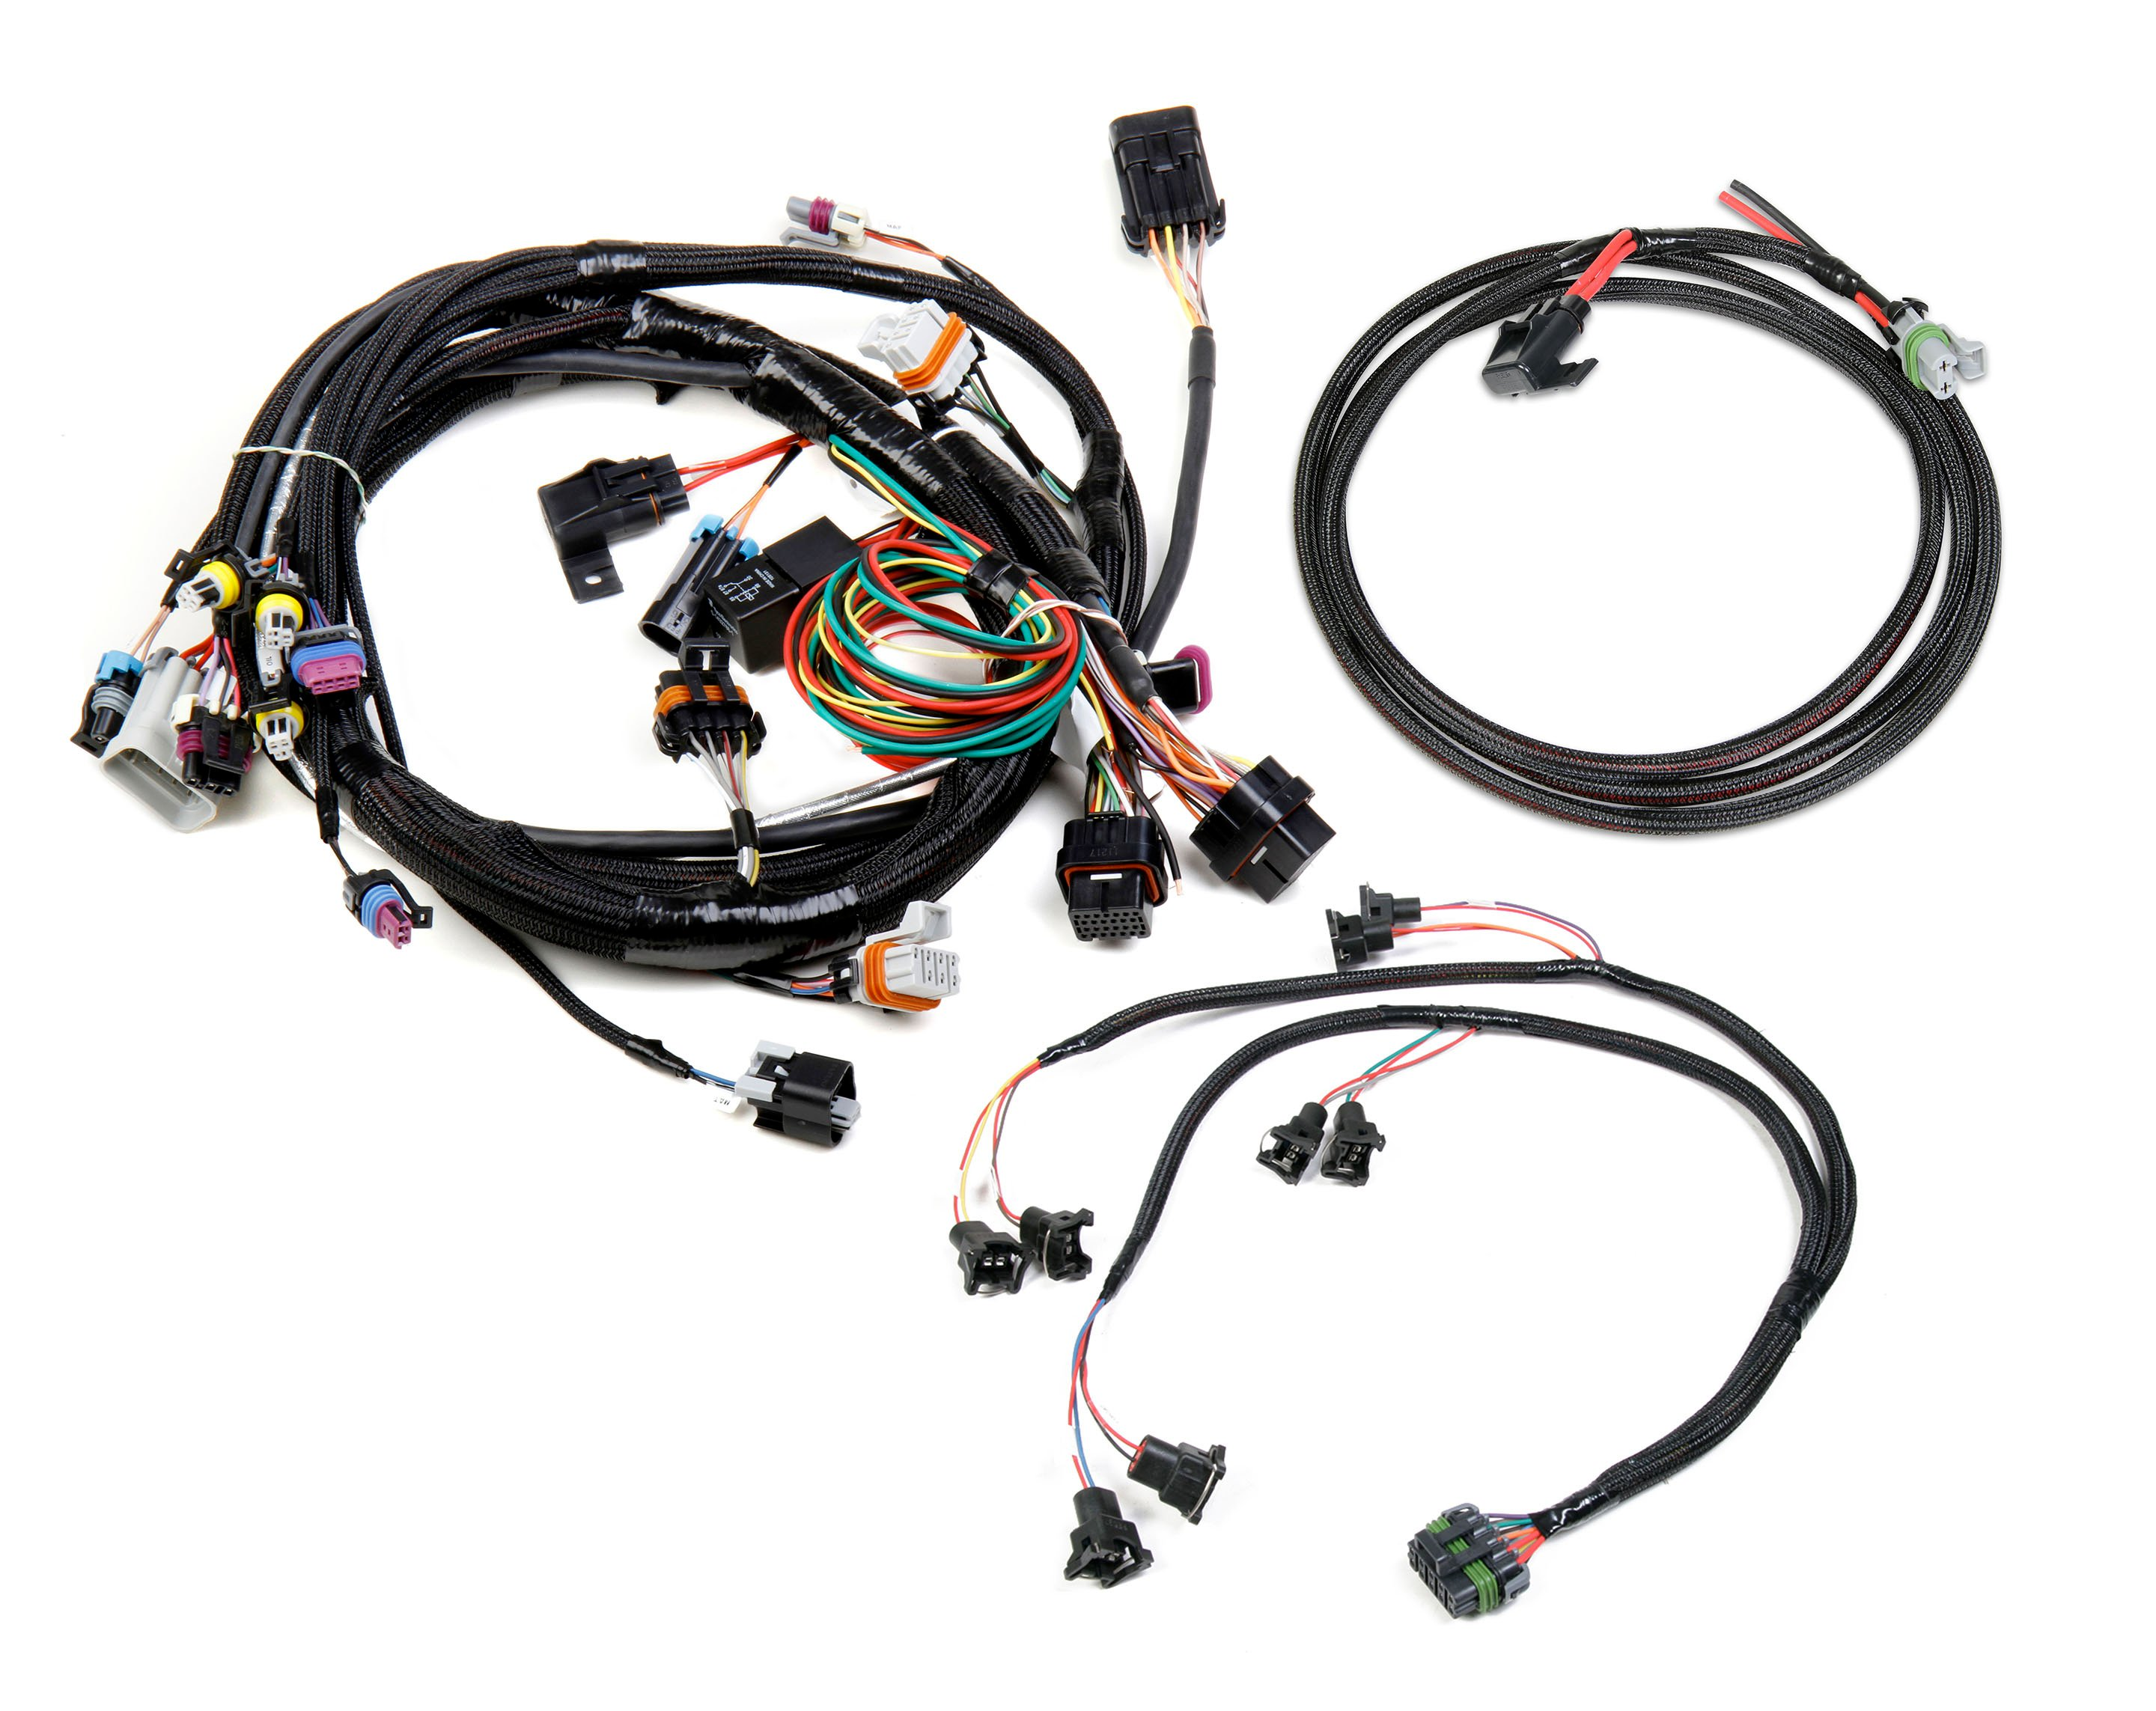 558 500 holley efi 558 500 gm ls 24x efi harness kit holley ls wiring harness at bakdesigns.co